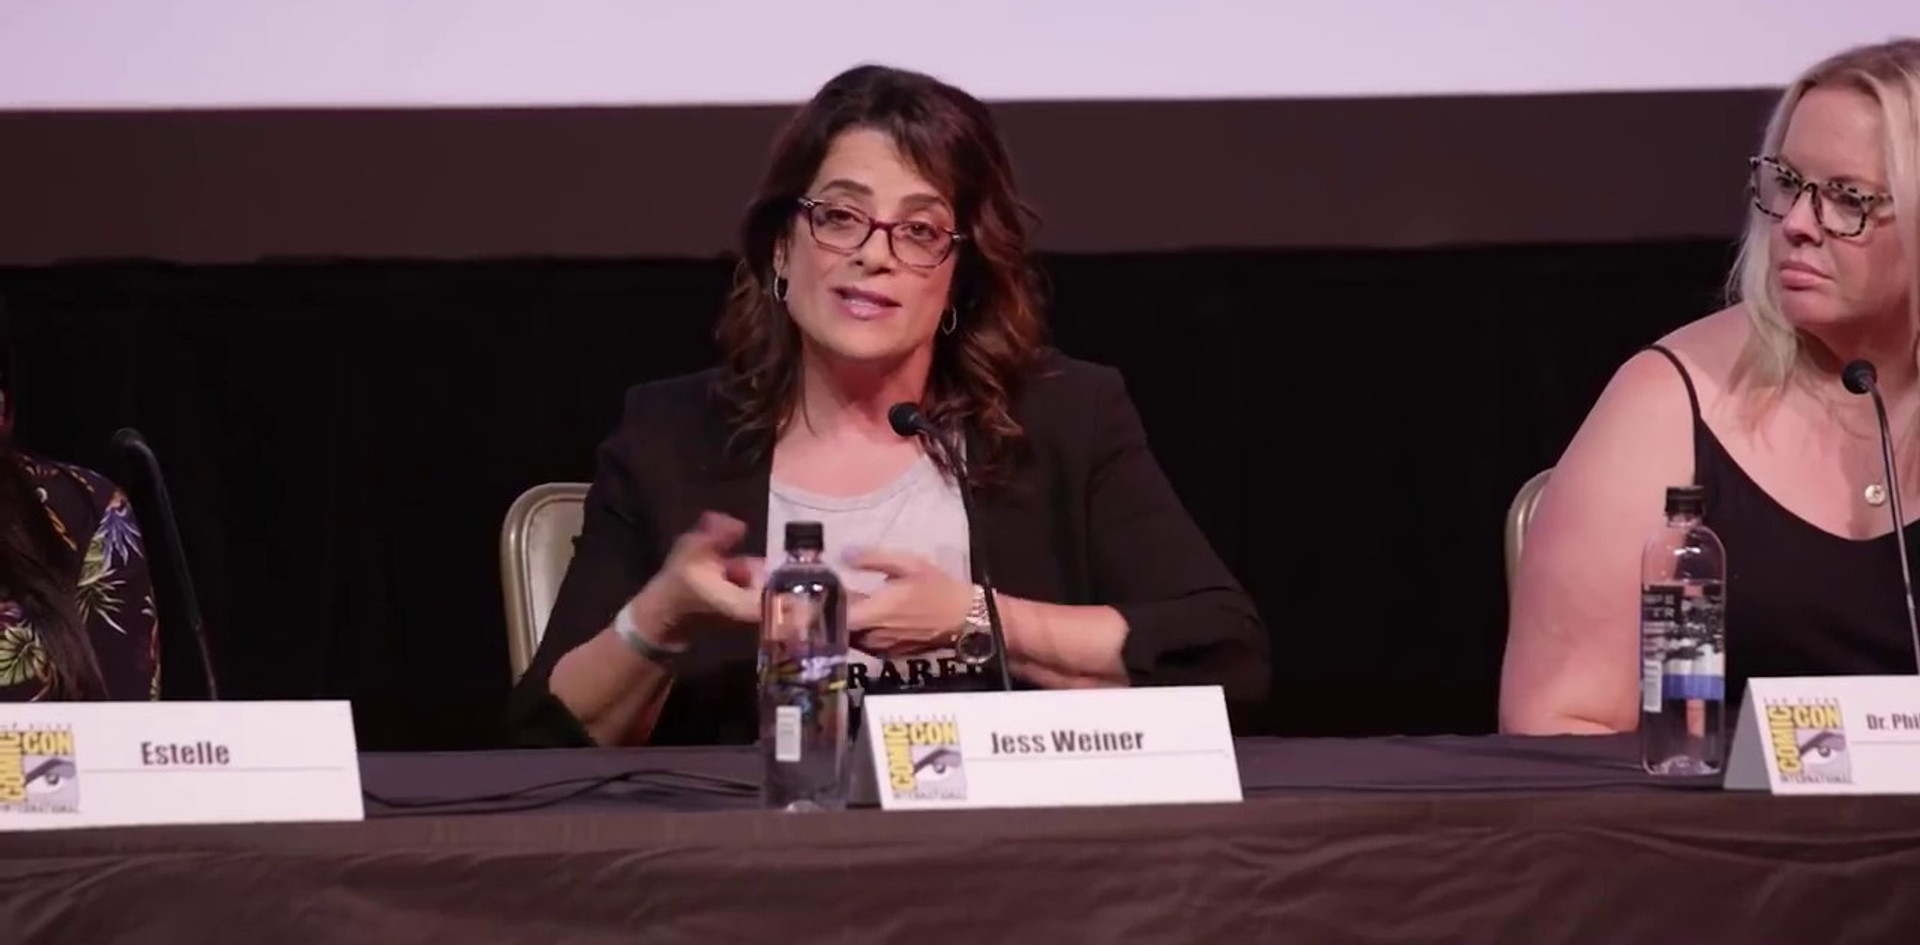 Jess Weiner | 2018 Comic Con Clip: The Intersection of Culture, Entertainment & Representation